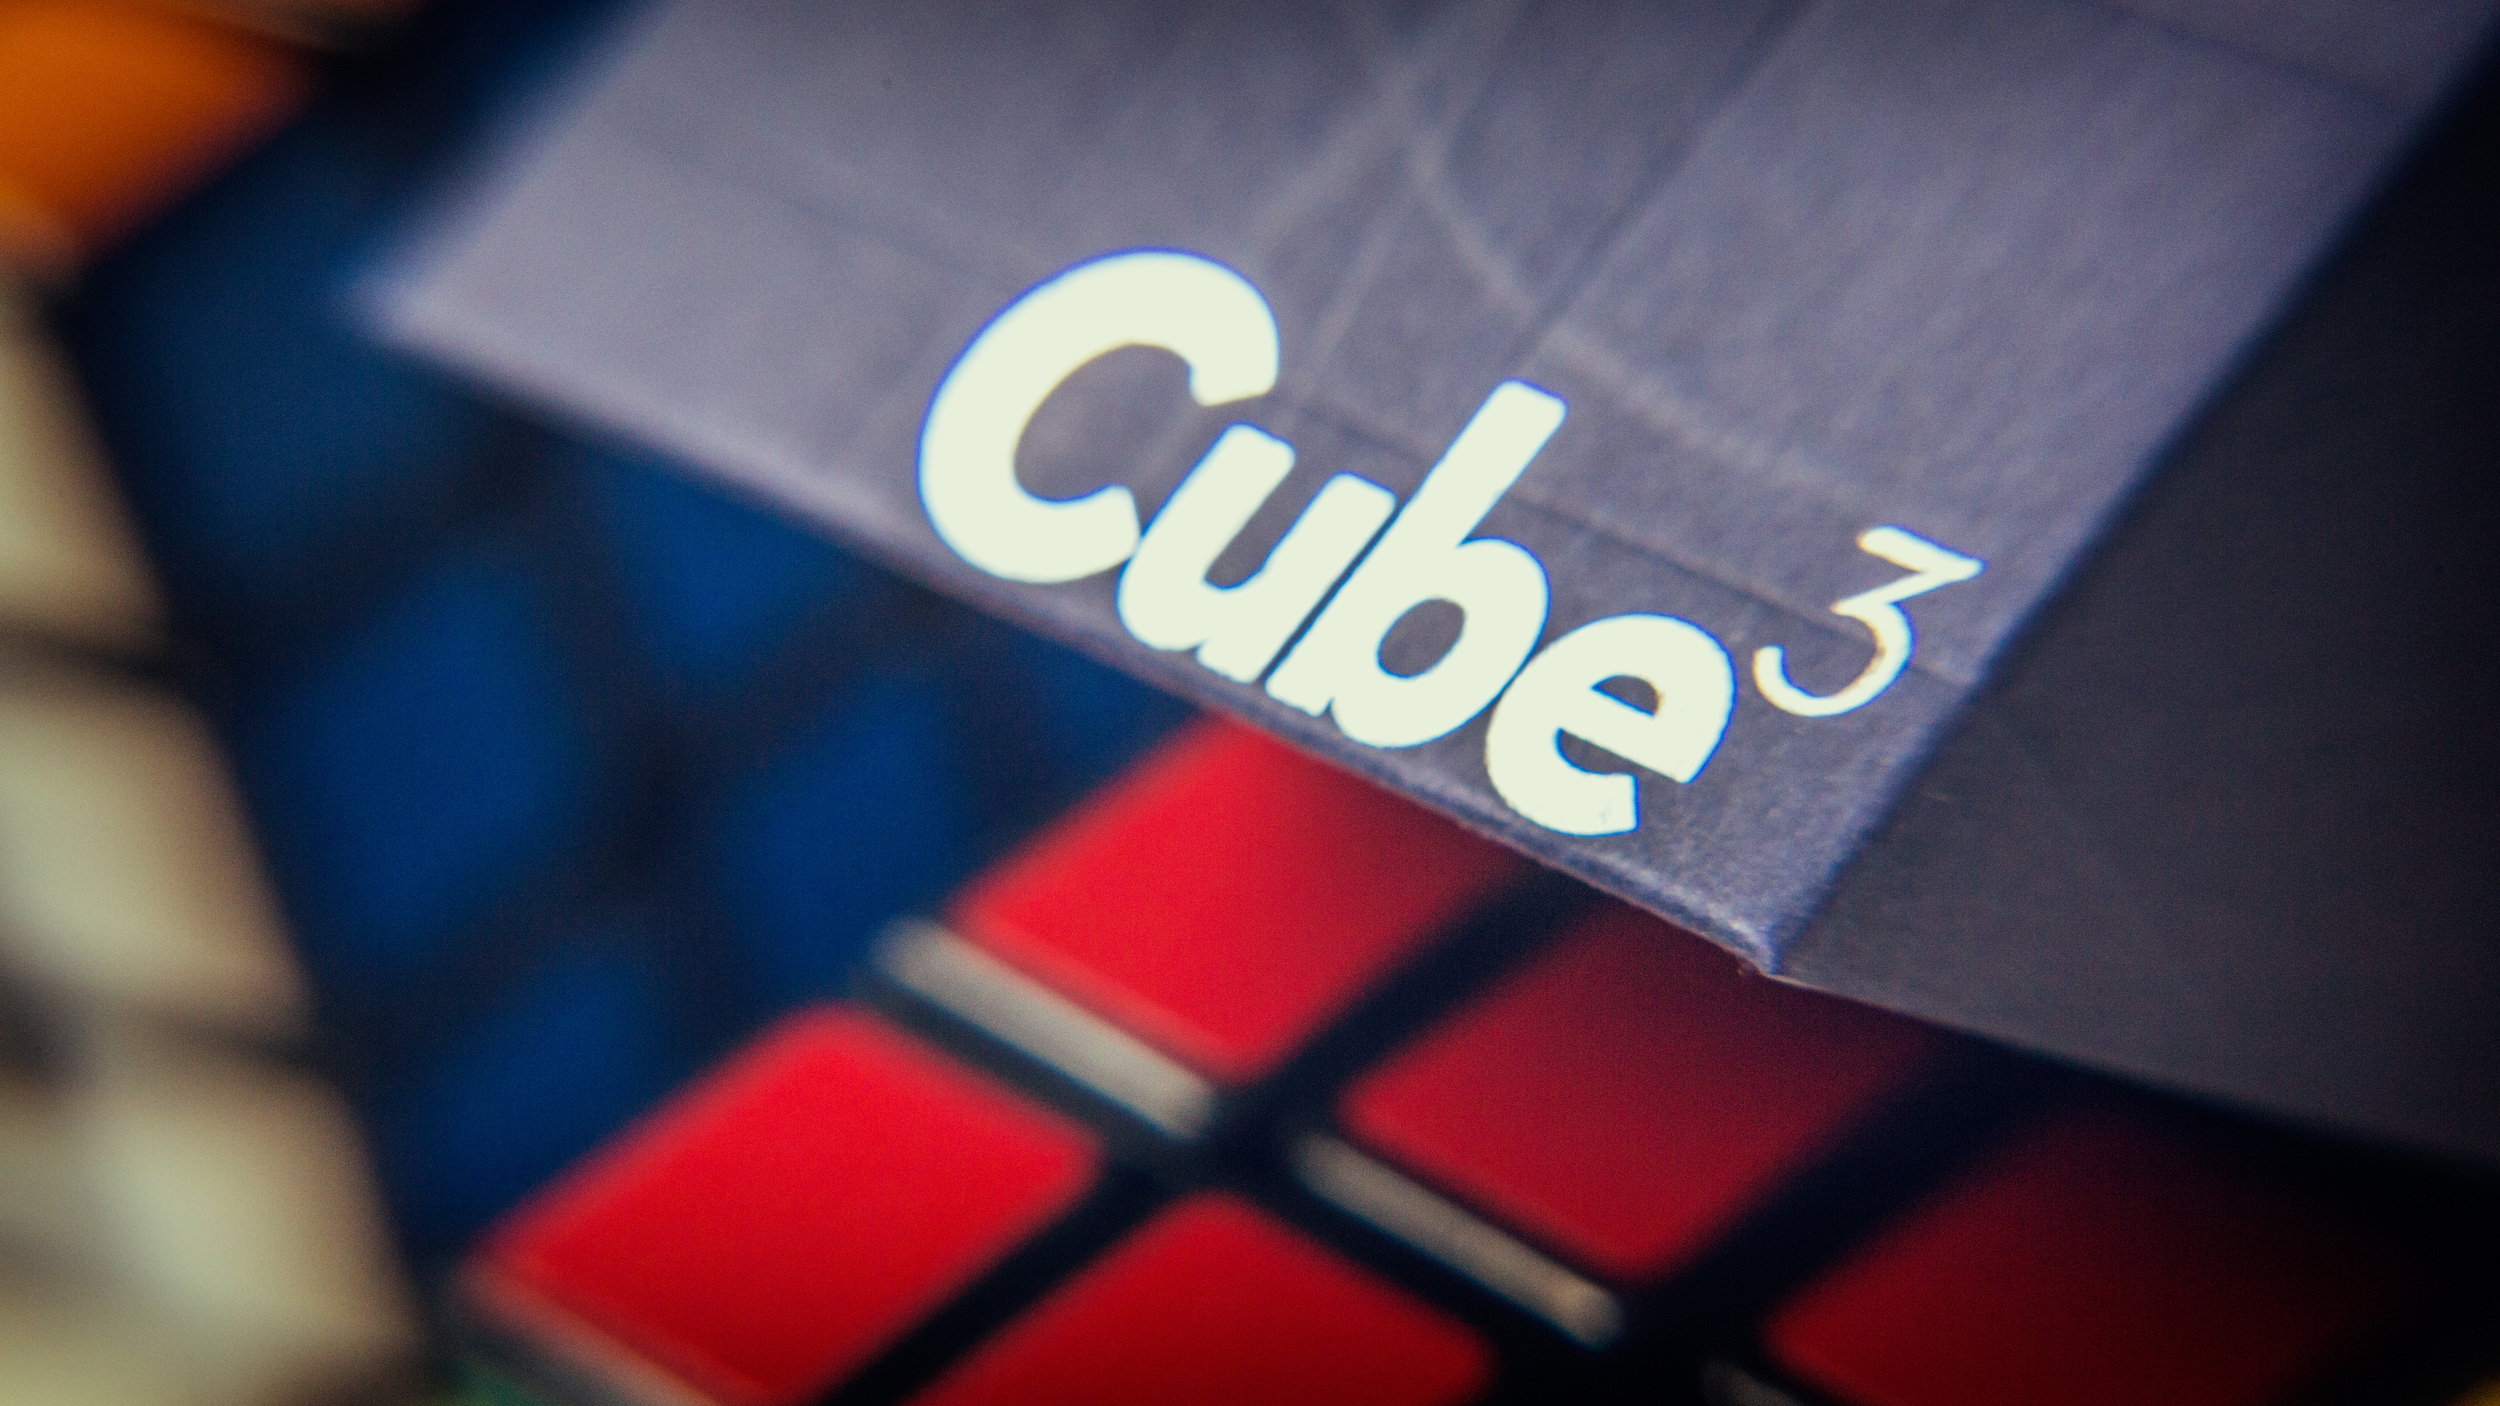 The cube routine